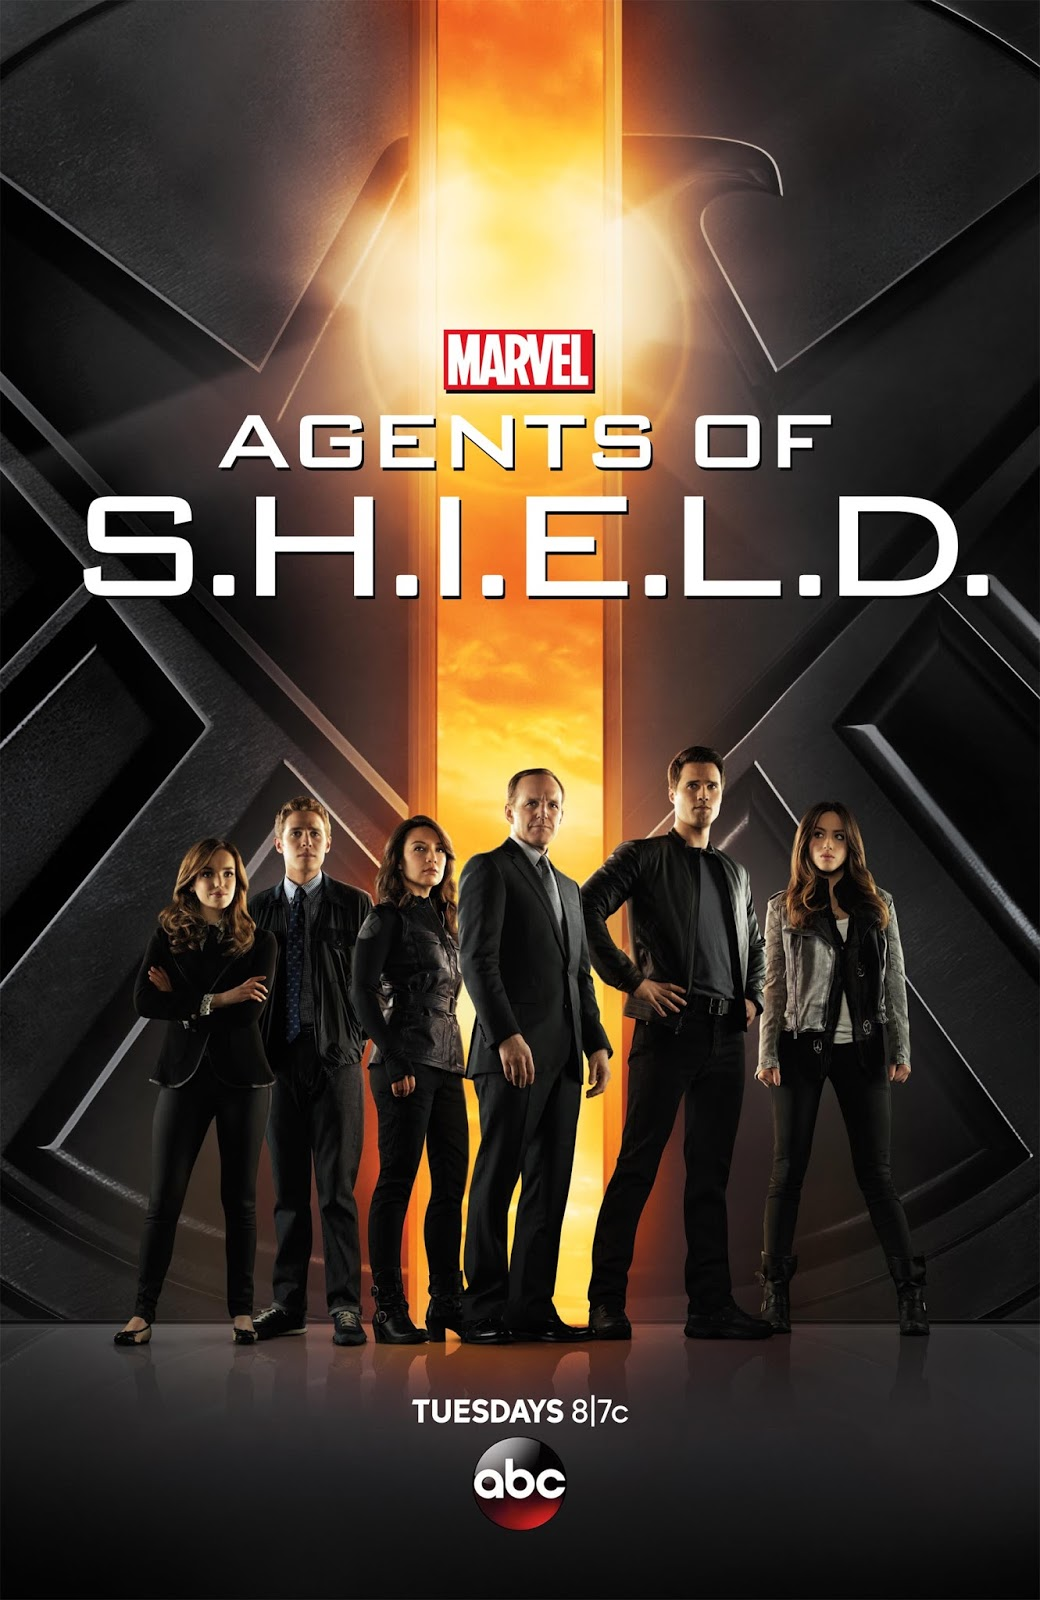 Marvel's Agents of S.H.I.E.L.D. Serie Completa Dual Latino/Ingles 1080p